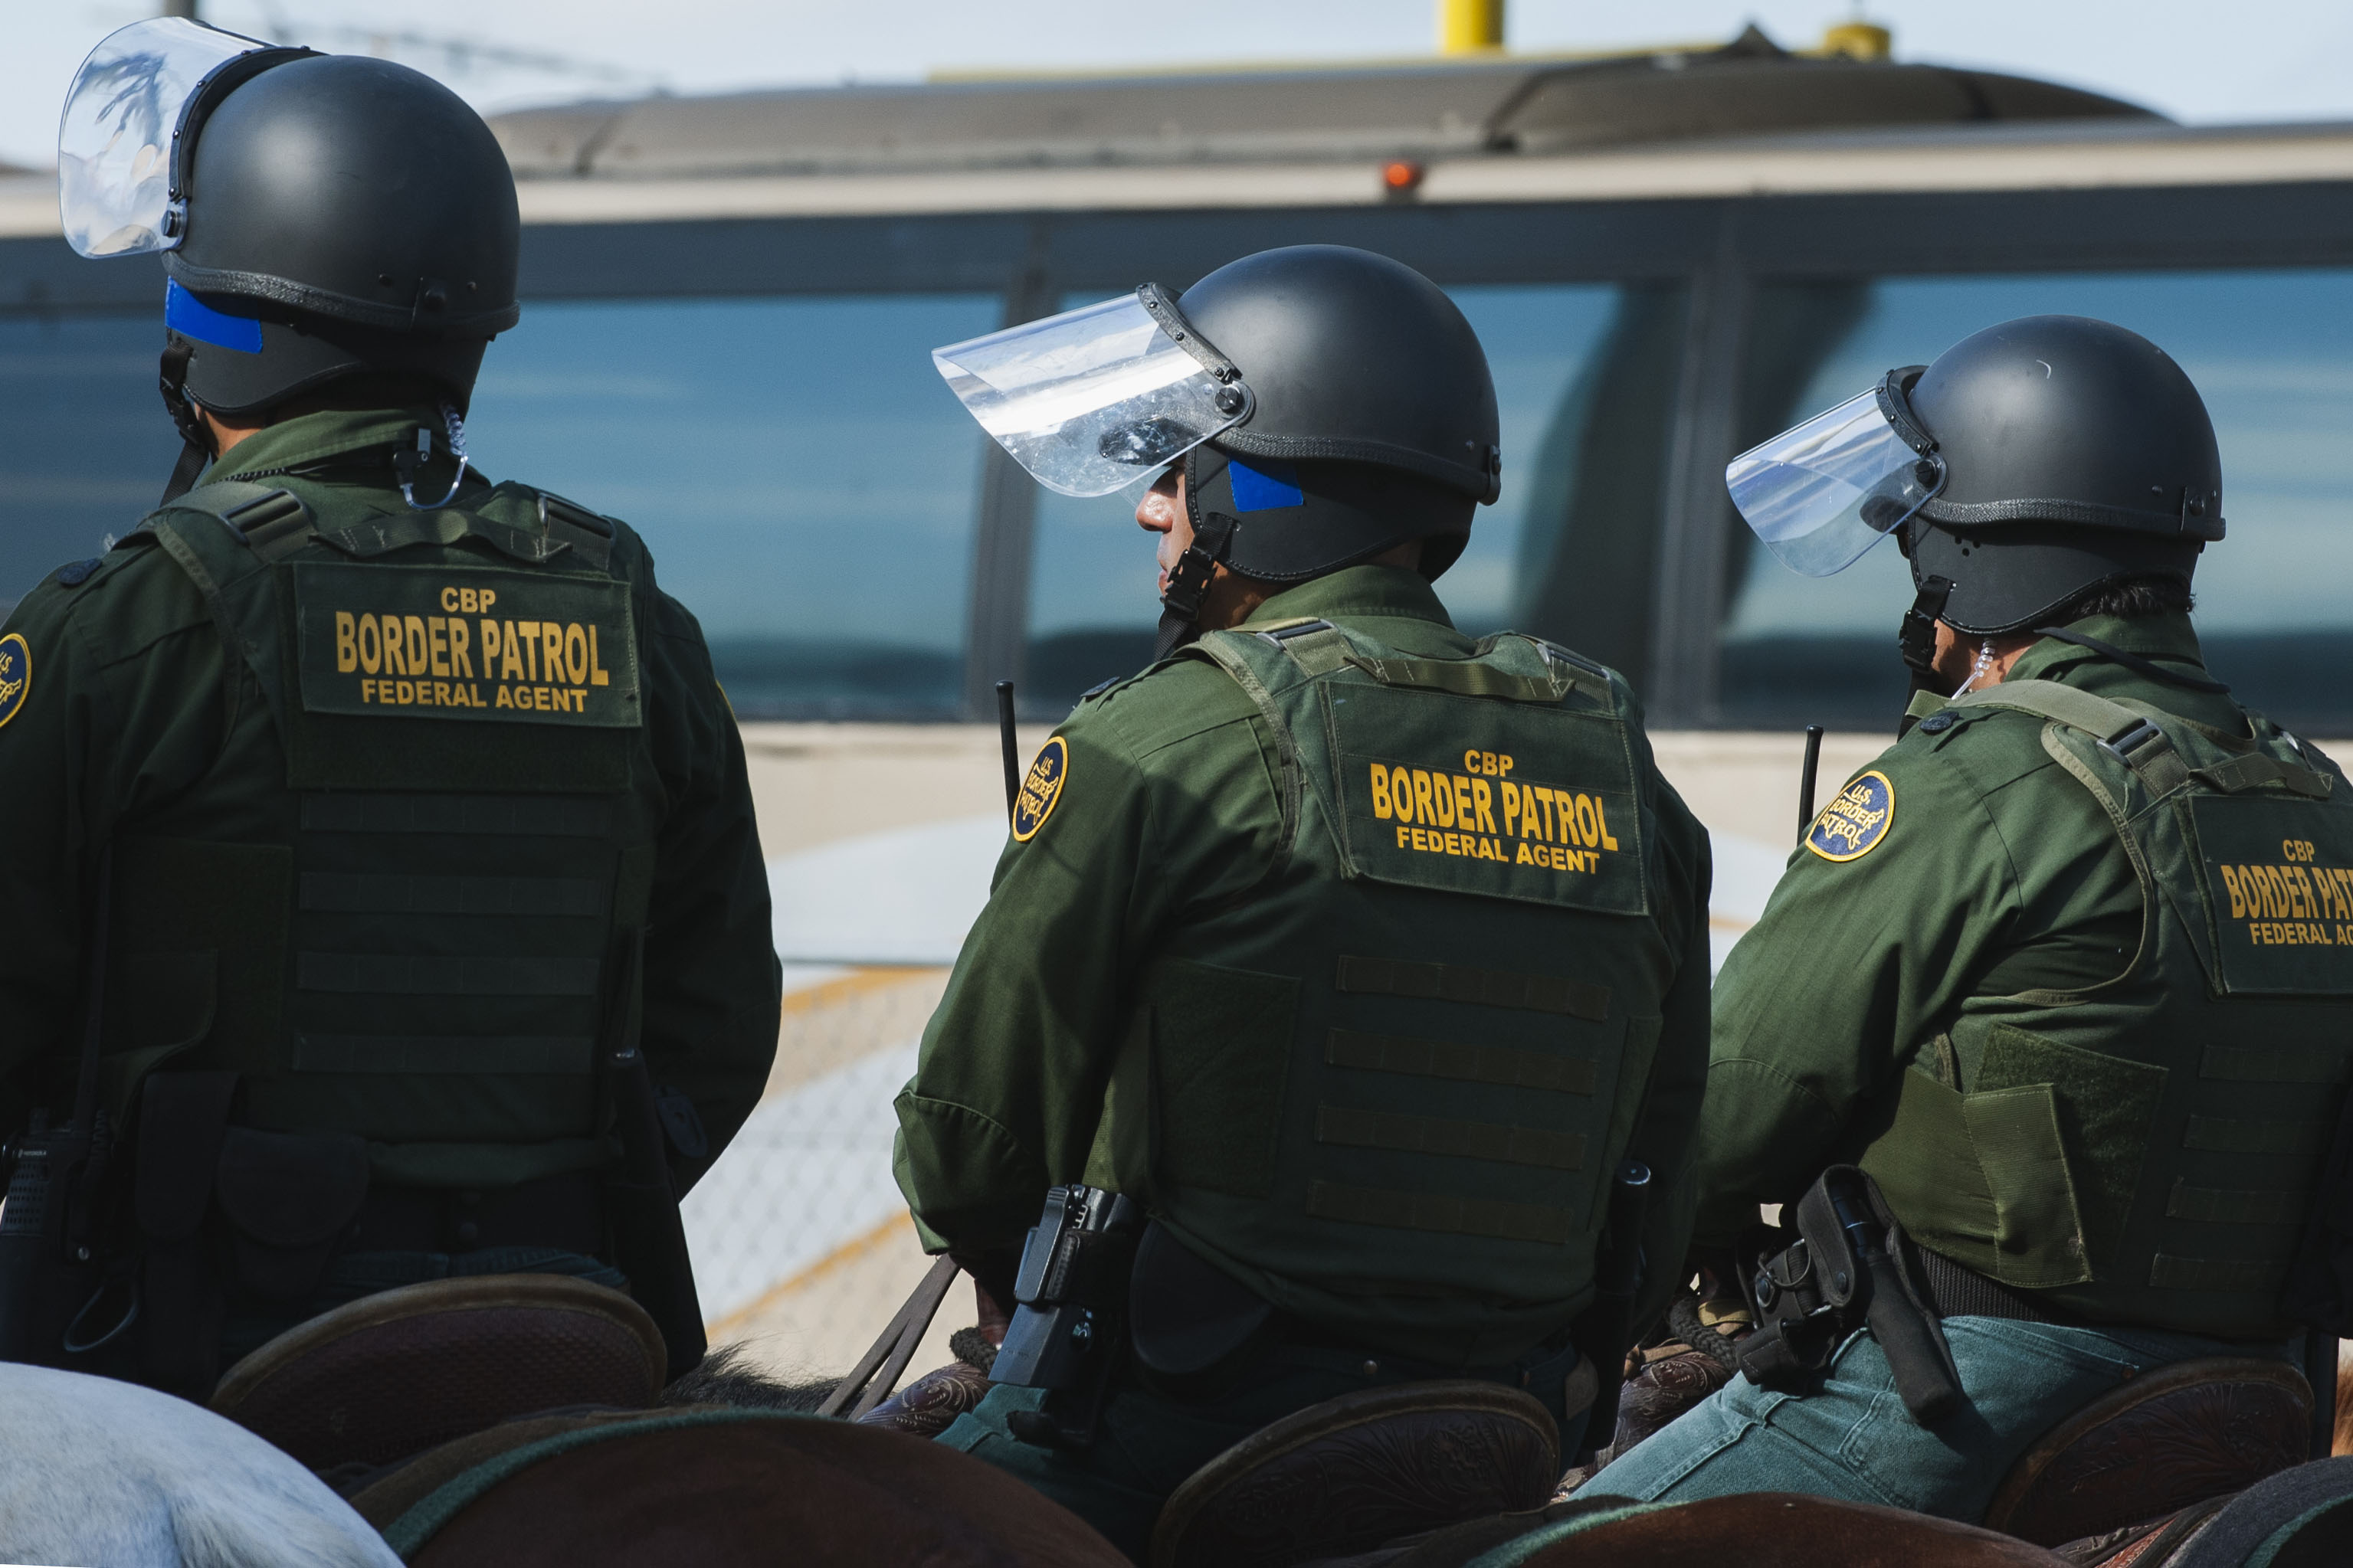 TOPSHOT-US-MEXICO-BORDER-SECURITY-IMMIGRATION (ANDREW CULLEN/AFP via Getty Images)